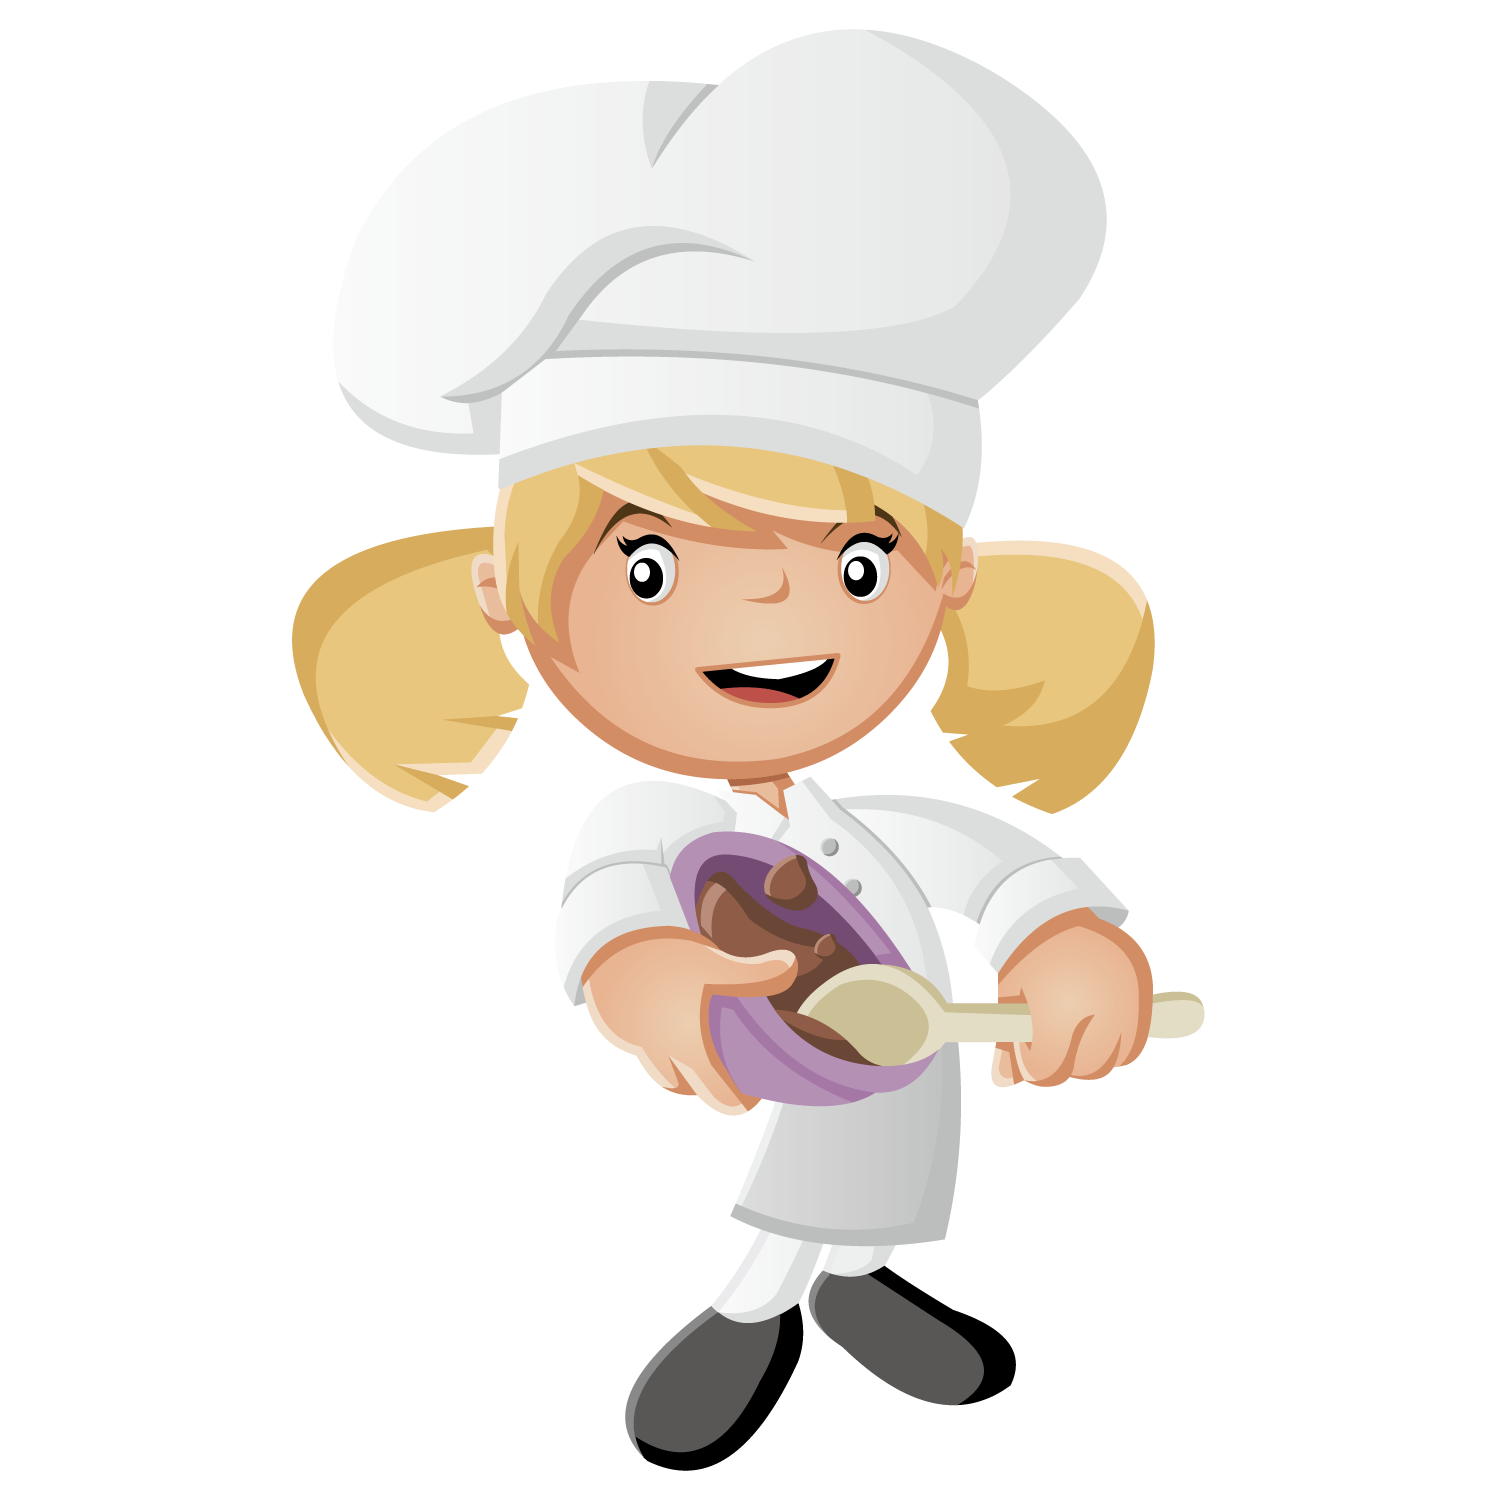 Animated chef png. Cartoon cook illustration cooking